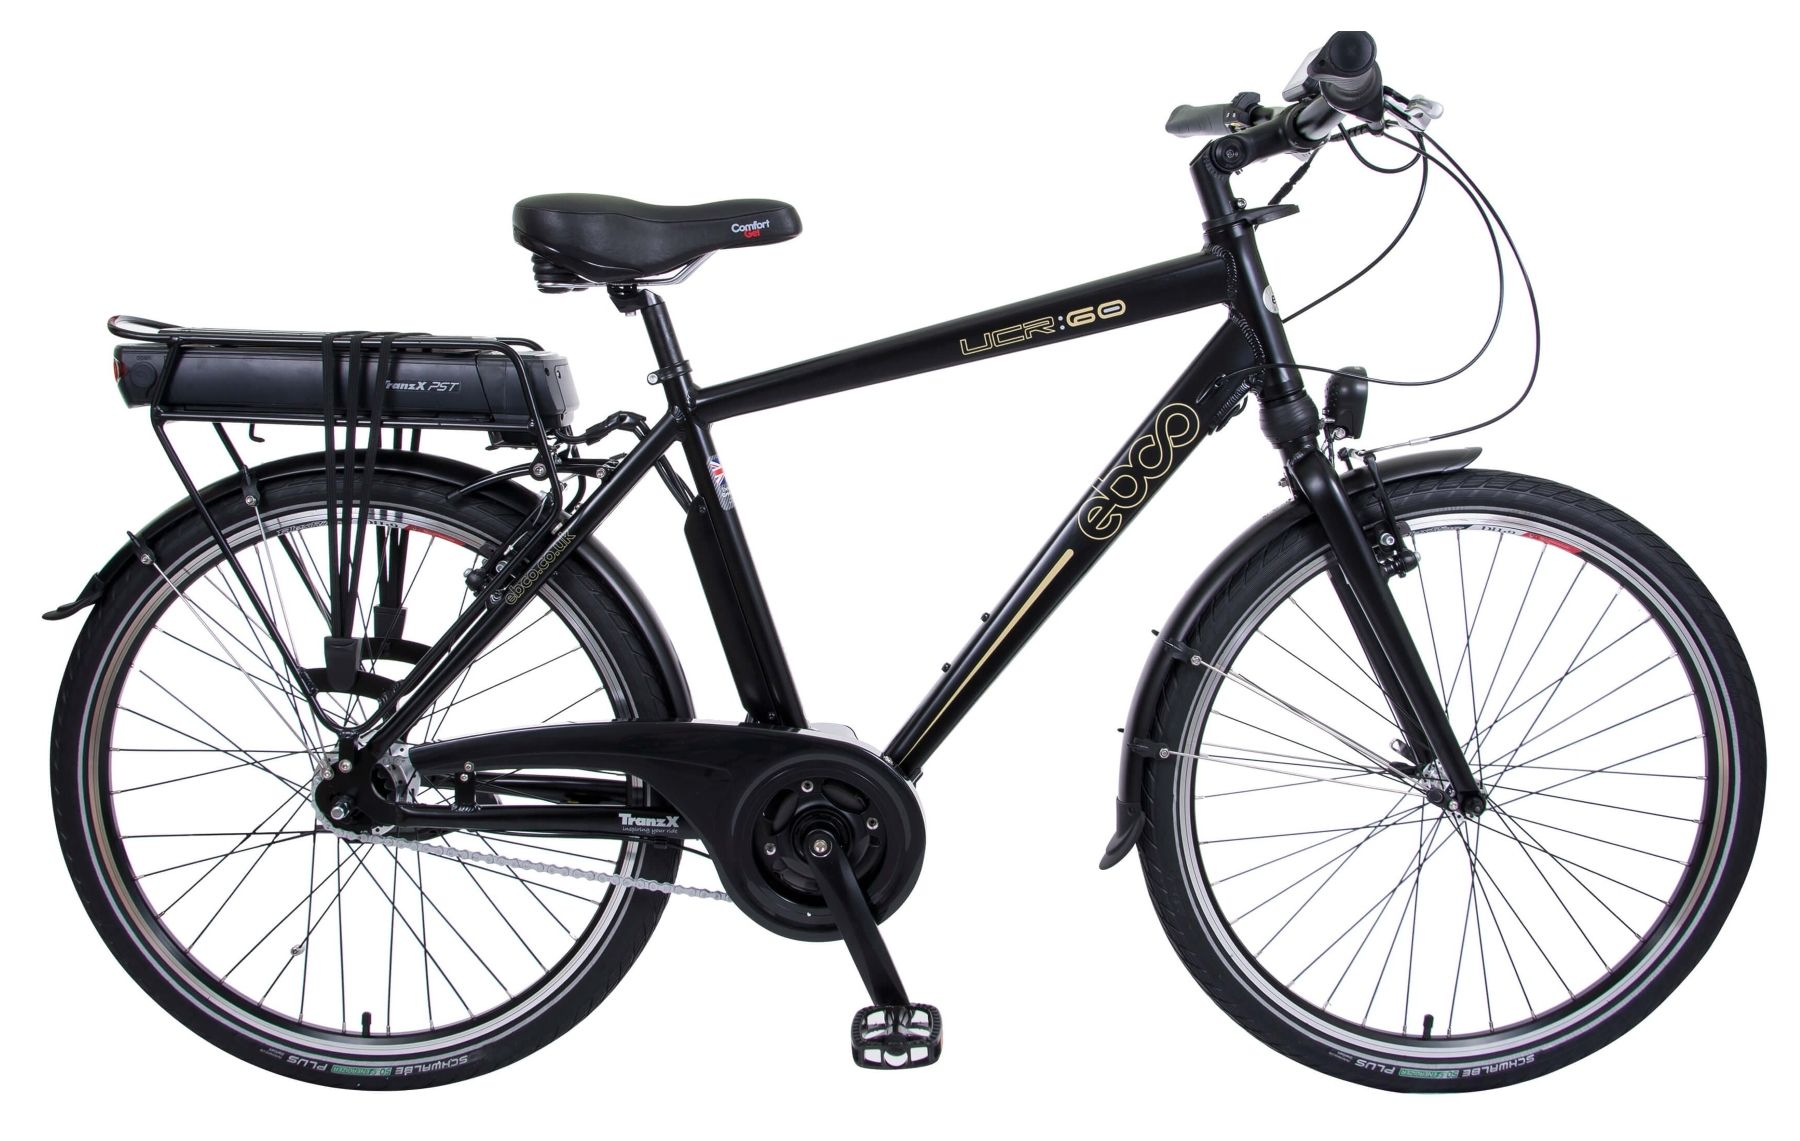 Ebco Ucr 60 26 Inch Electric Bike